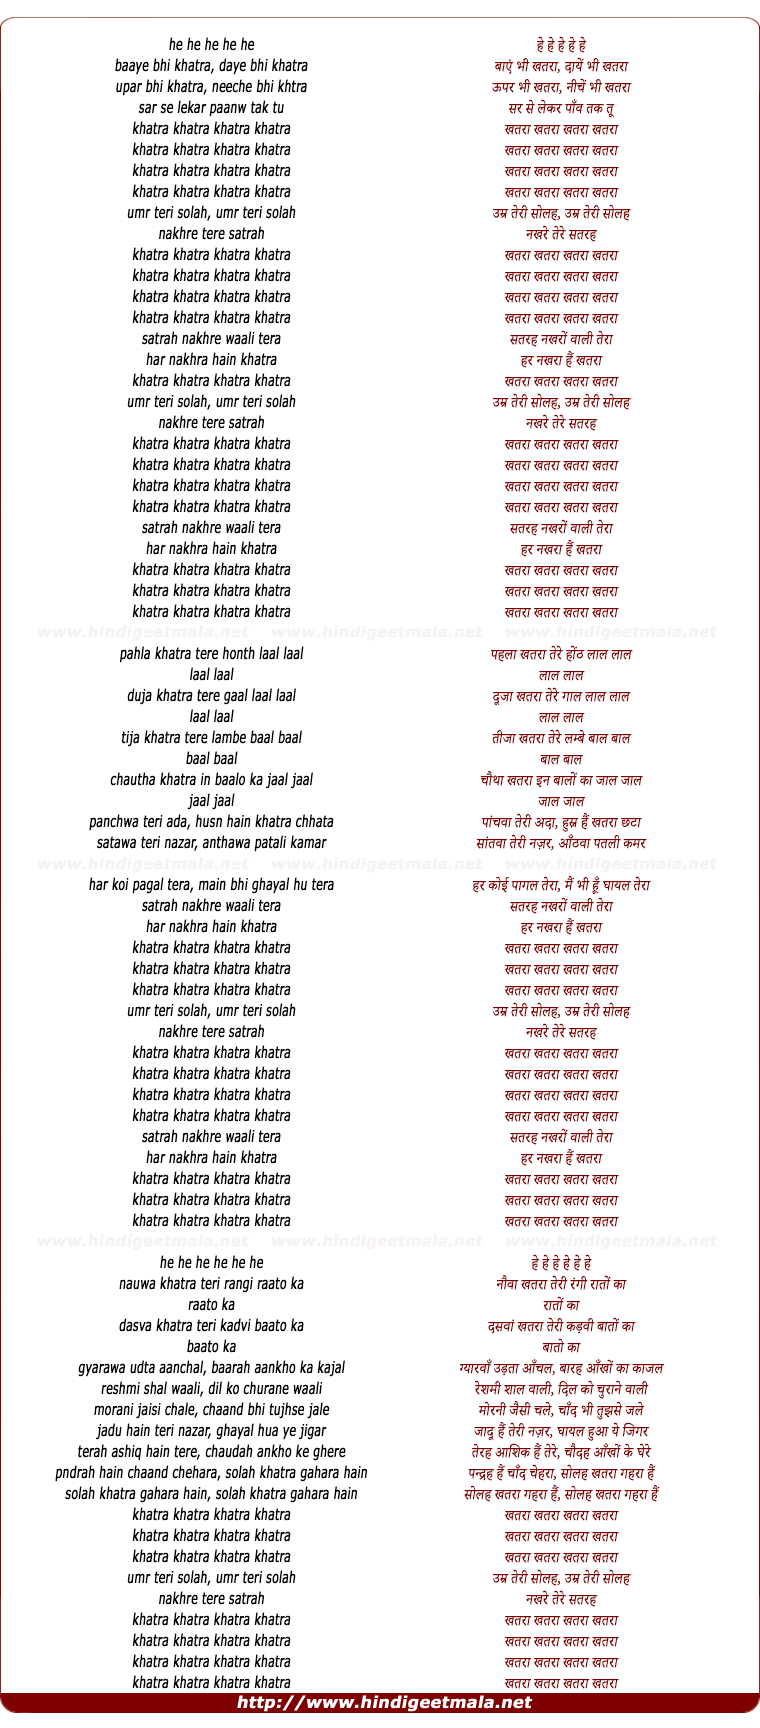 lyrics of song Umr Teri Solah